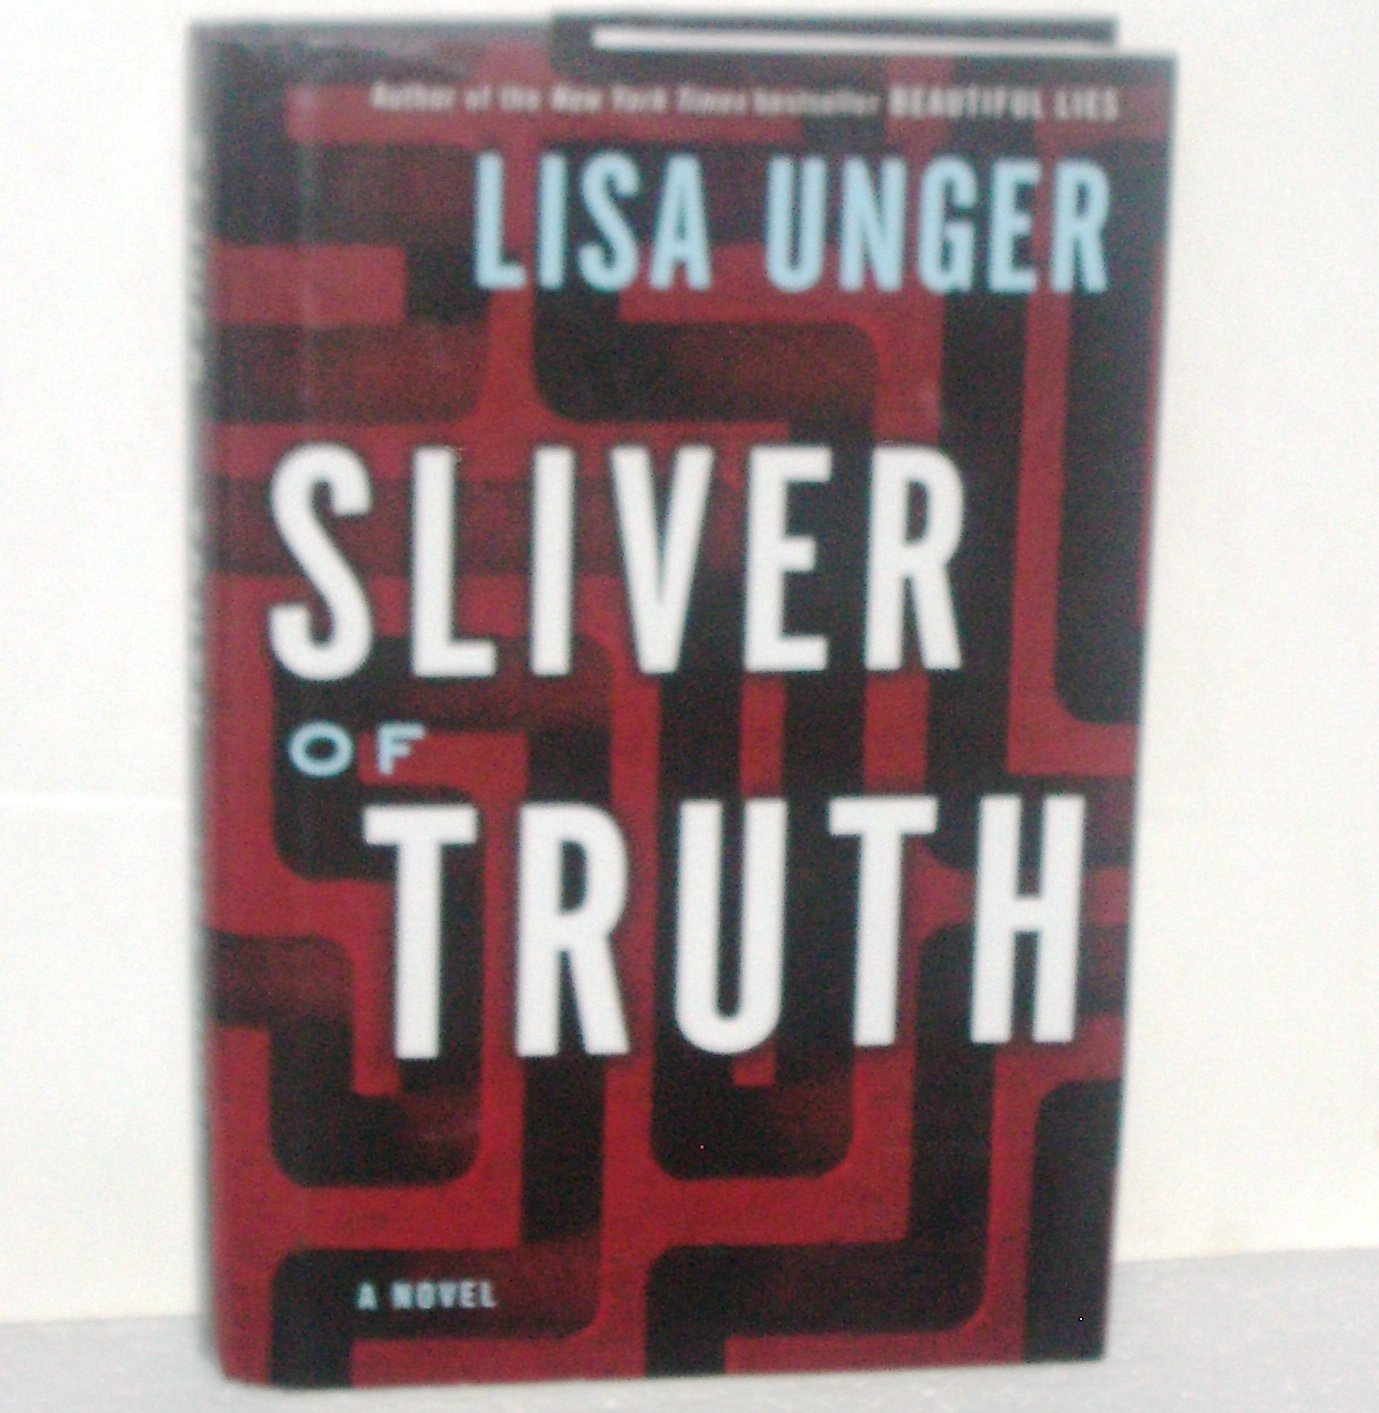 Sliver of Truth by LISA UNGER Mystery Thriller 2007 Hardcover with Dust Jacket